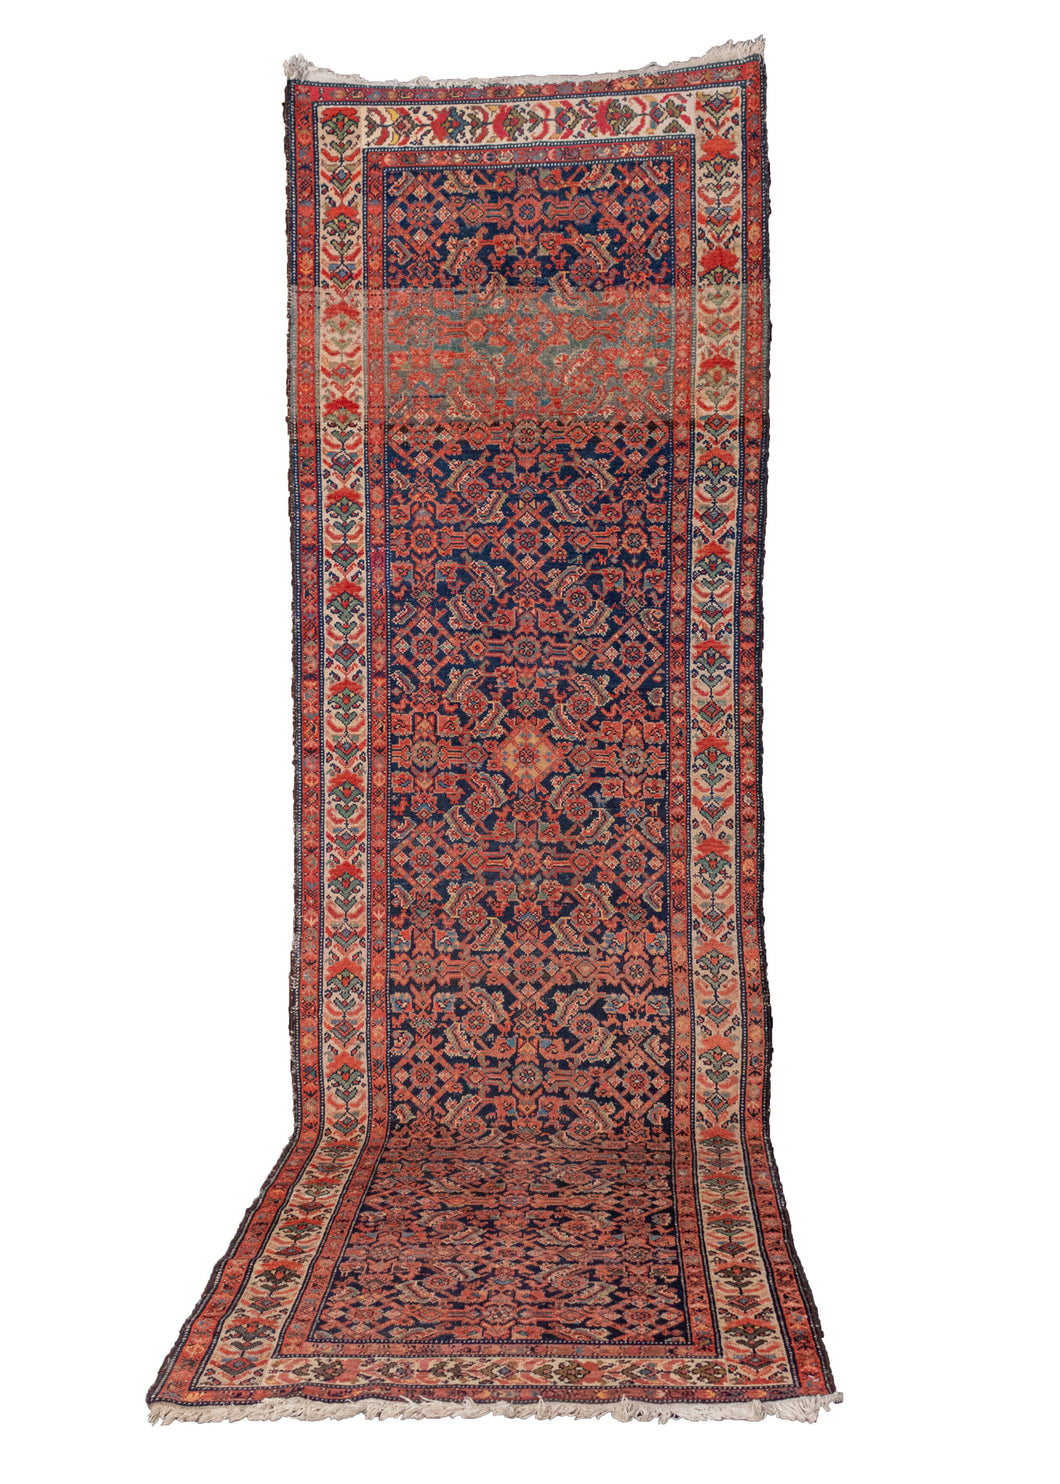 1940s Iranian Malayer Runner - 3'4 x 11'